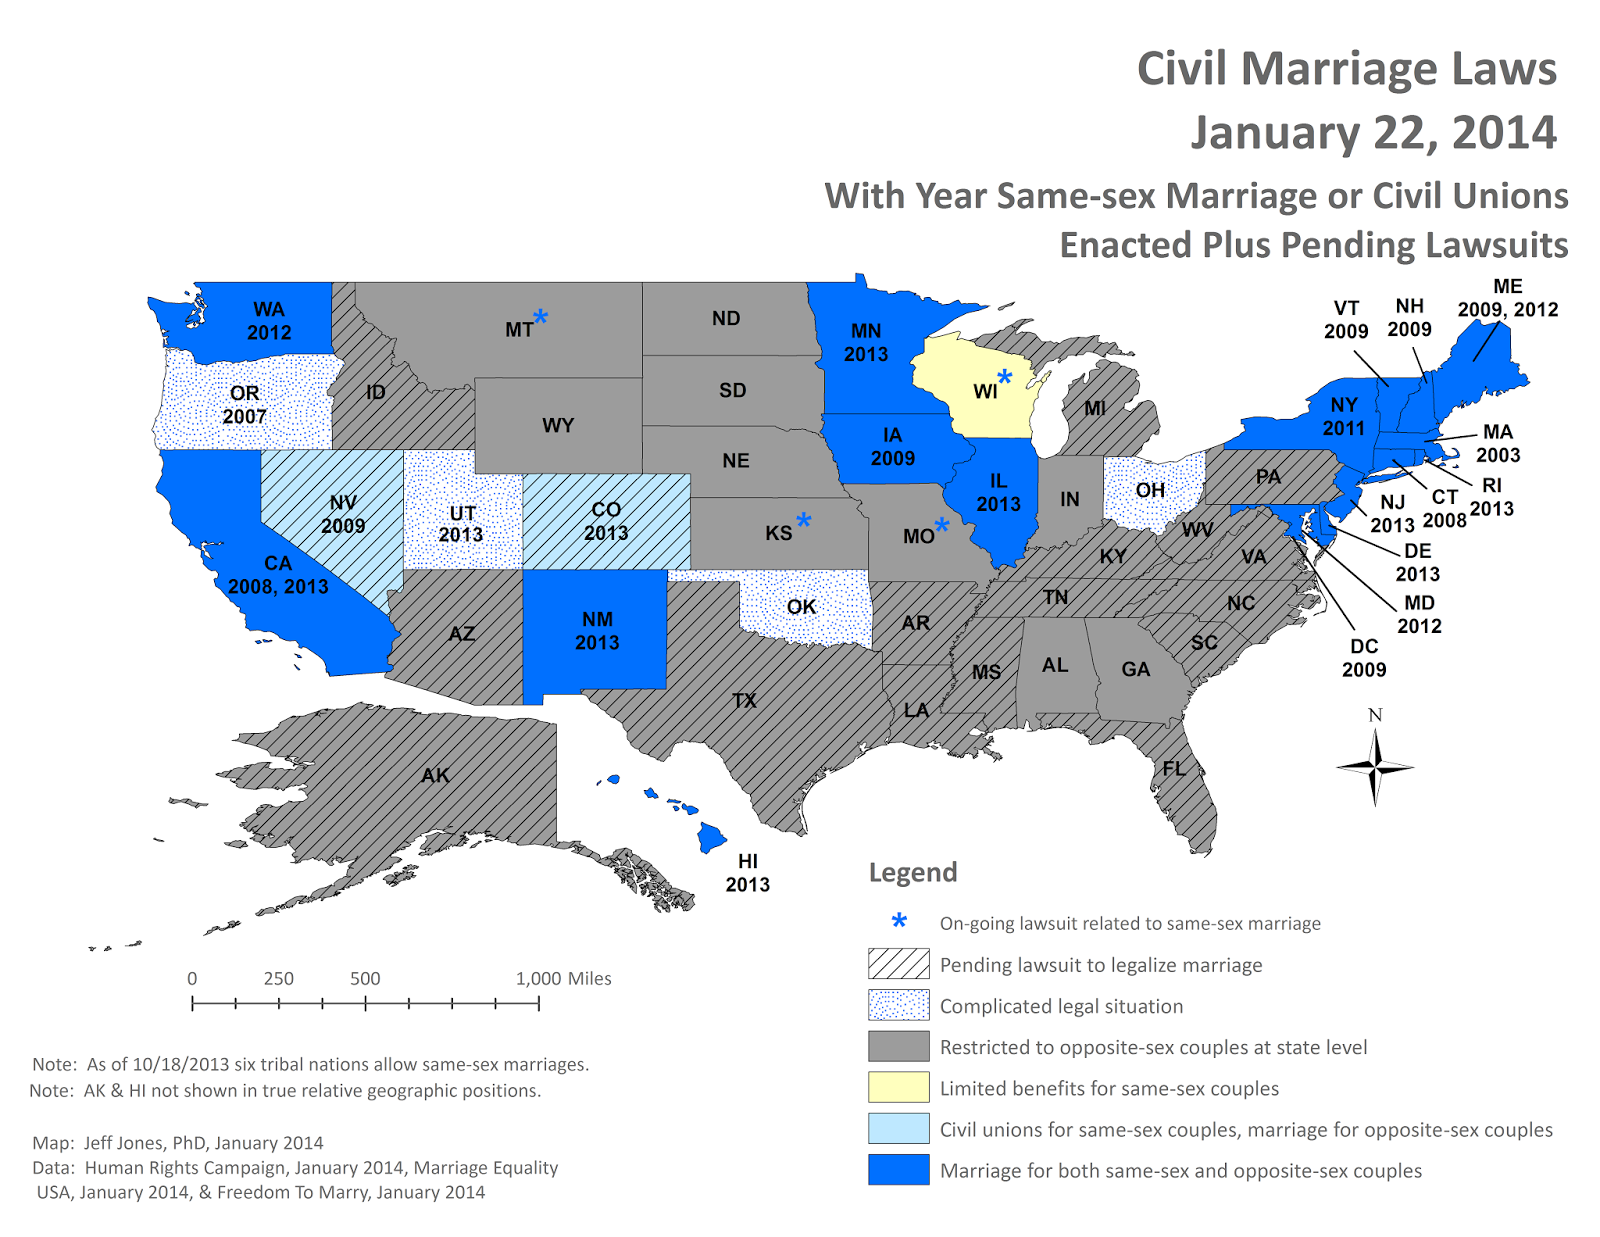 what is a civil union The american civil liberties union (aclu) is a national organization that works daily in courts, legislatures and communities to defend the individual rights and liberties guaranteed by the constitution and laws of the united states.